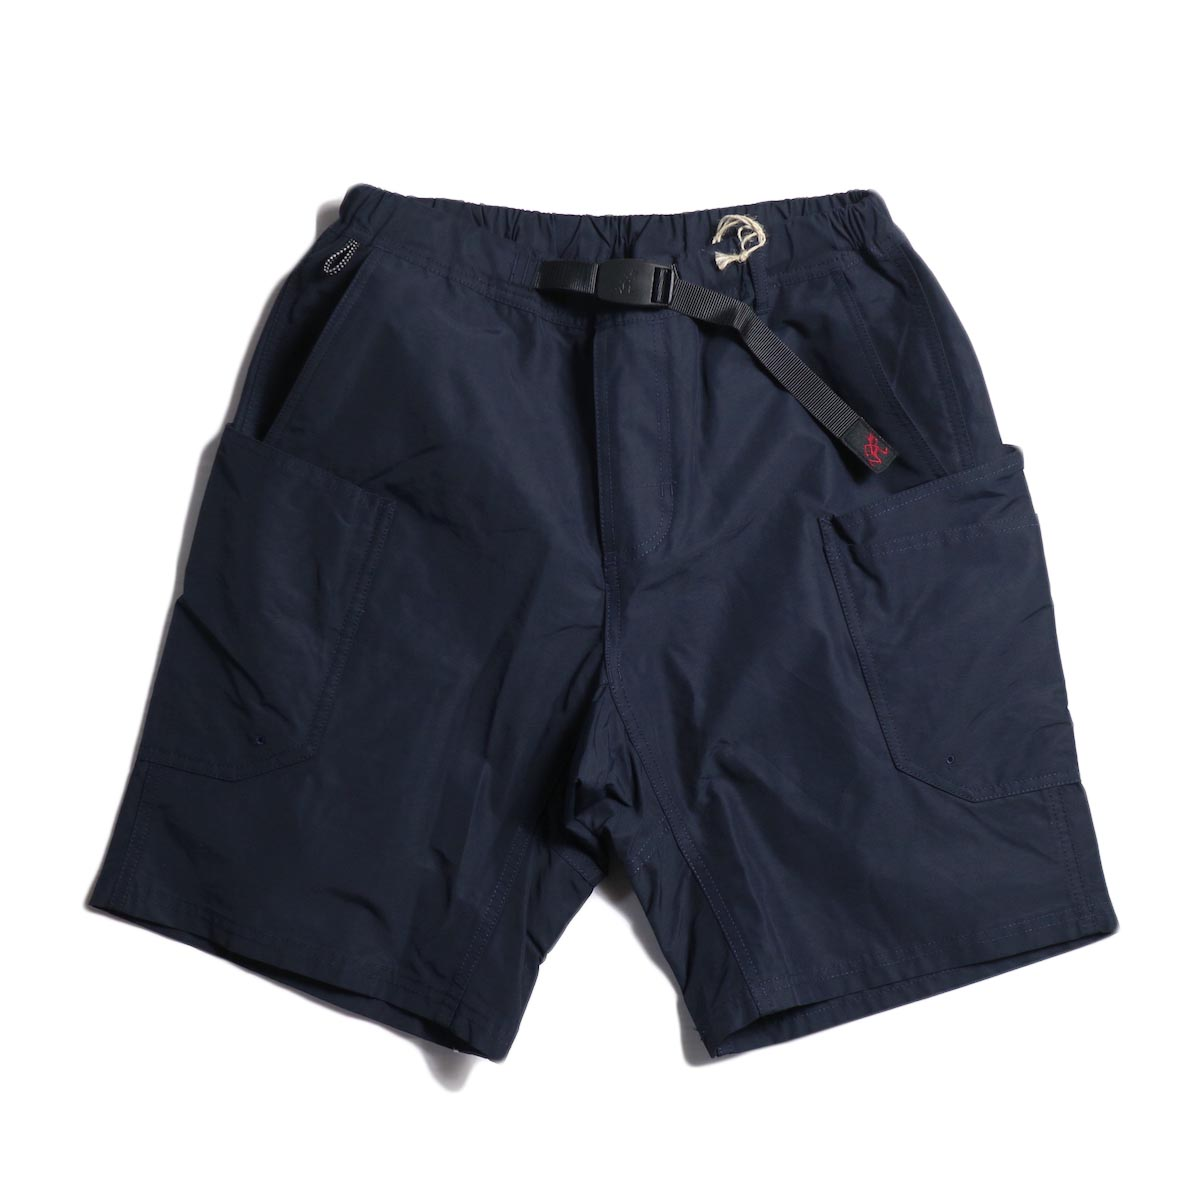 GRAMICCI×GRIP SWANY / CAMP GEAR SHORTS -Navy